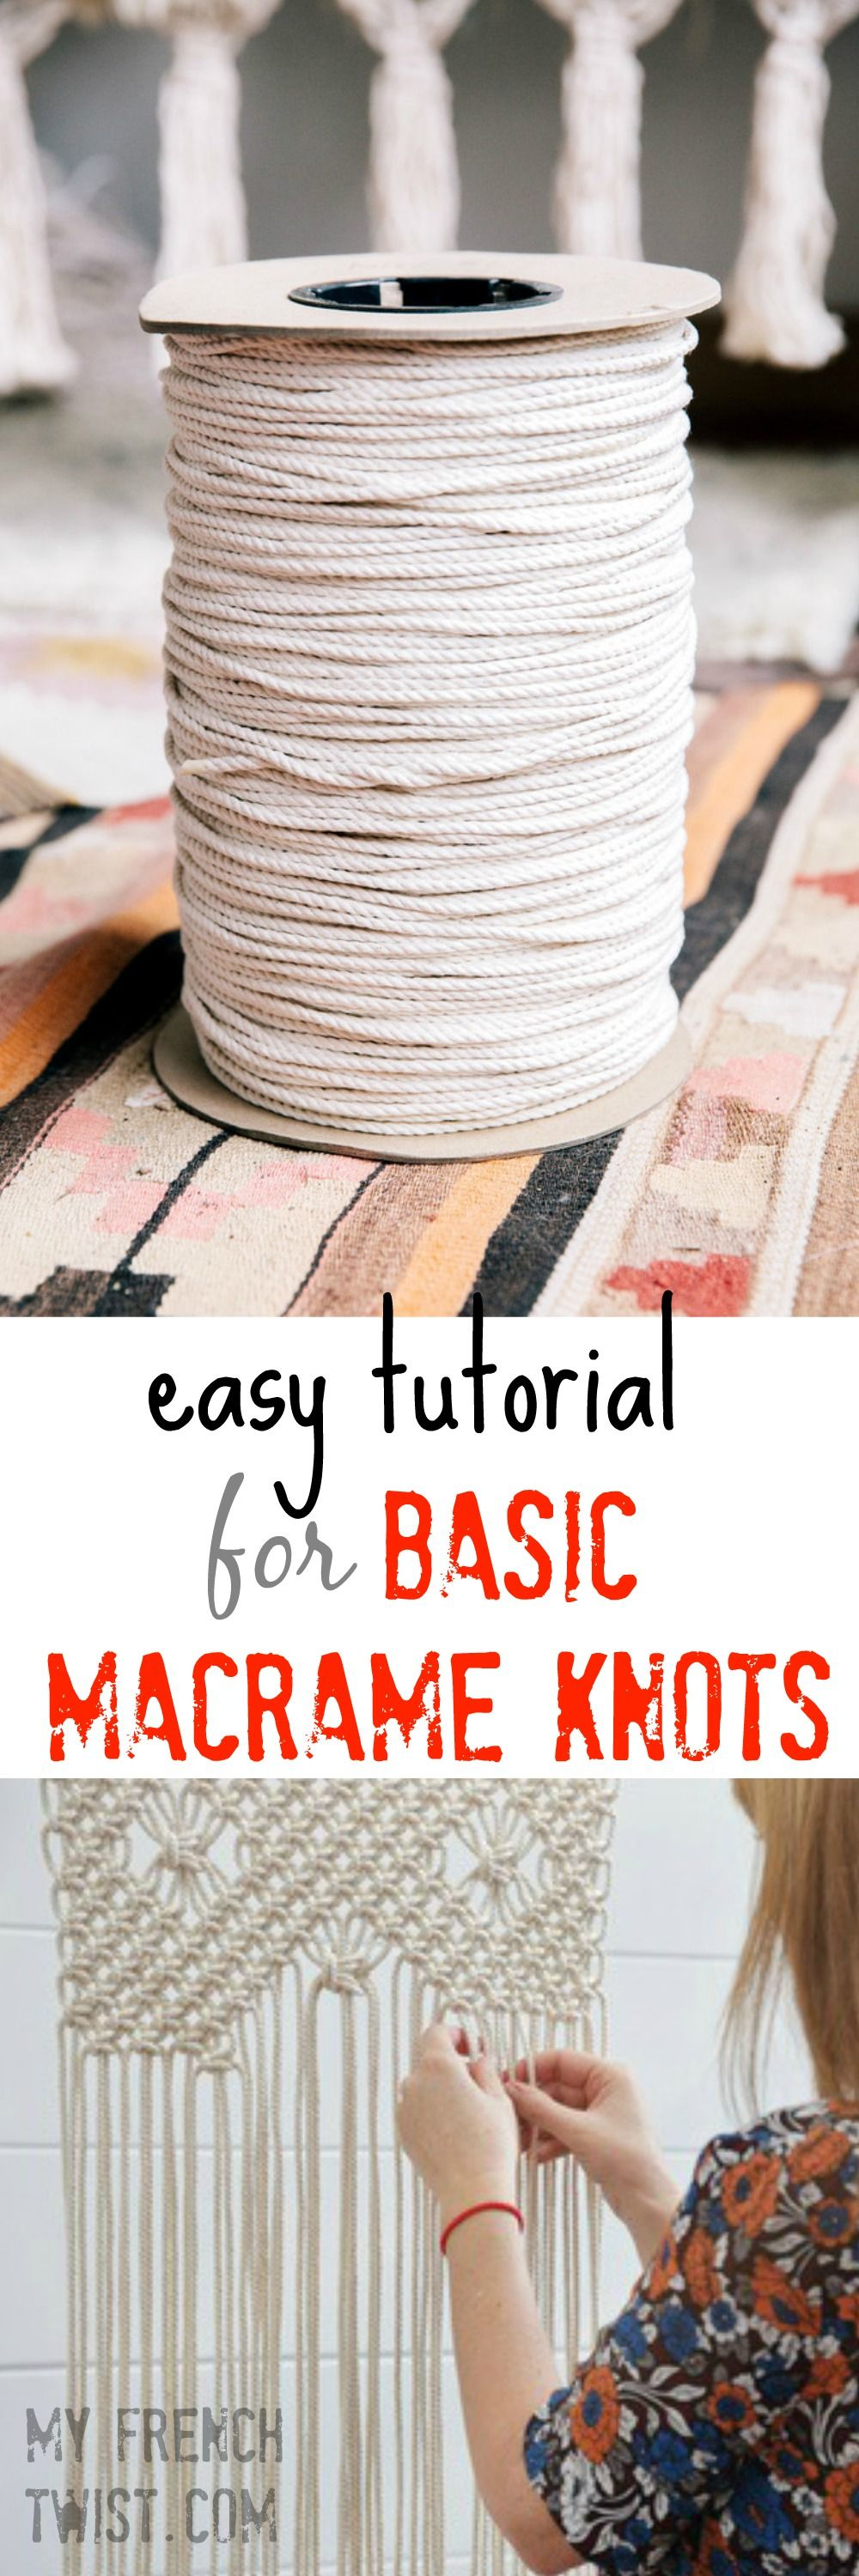 Want a macrame tutorial that is EASY? try this one at myfrenchtwist.com http://www.myfrenchtwist.com/easy-tutorial-for-basic-macrame-knots/